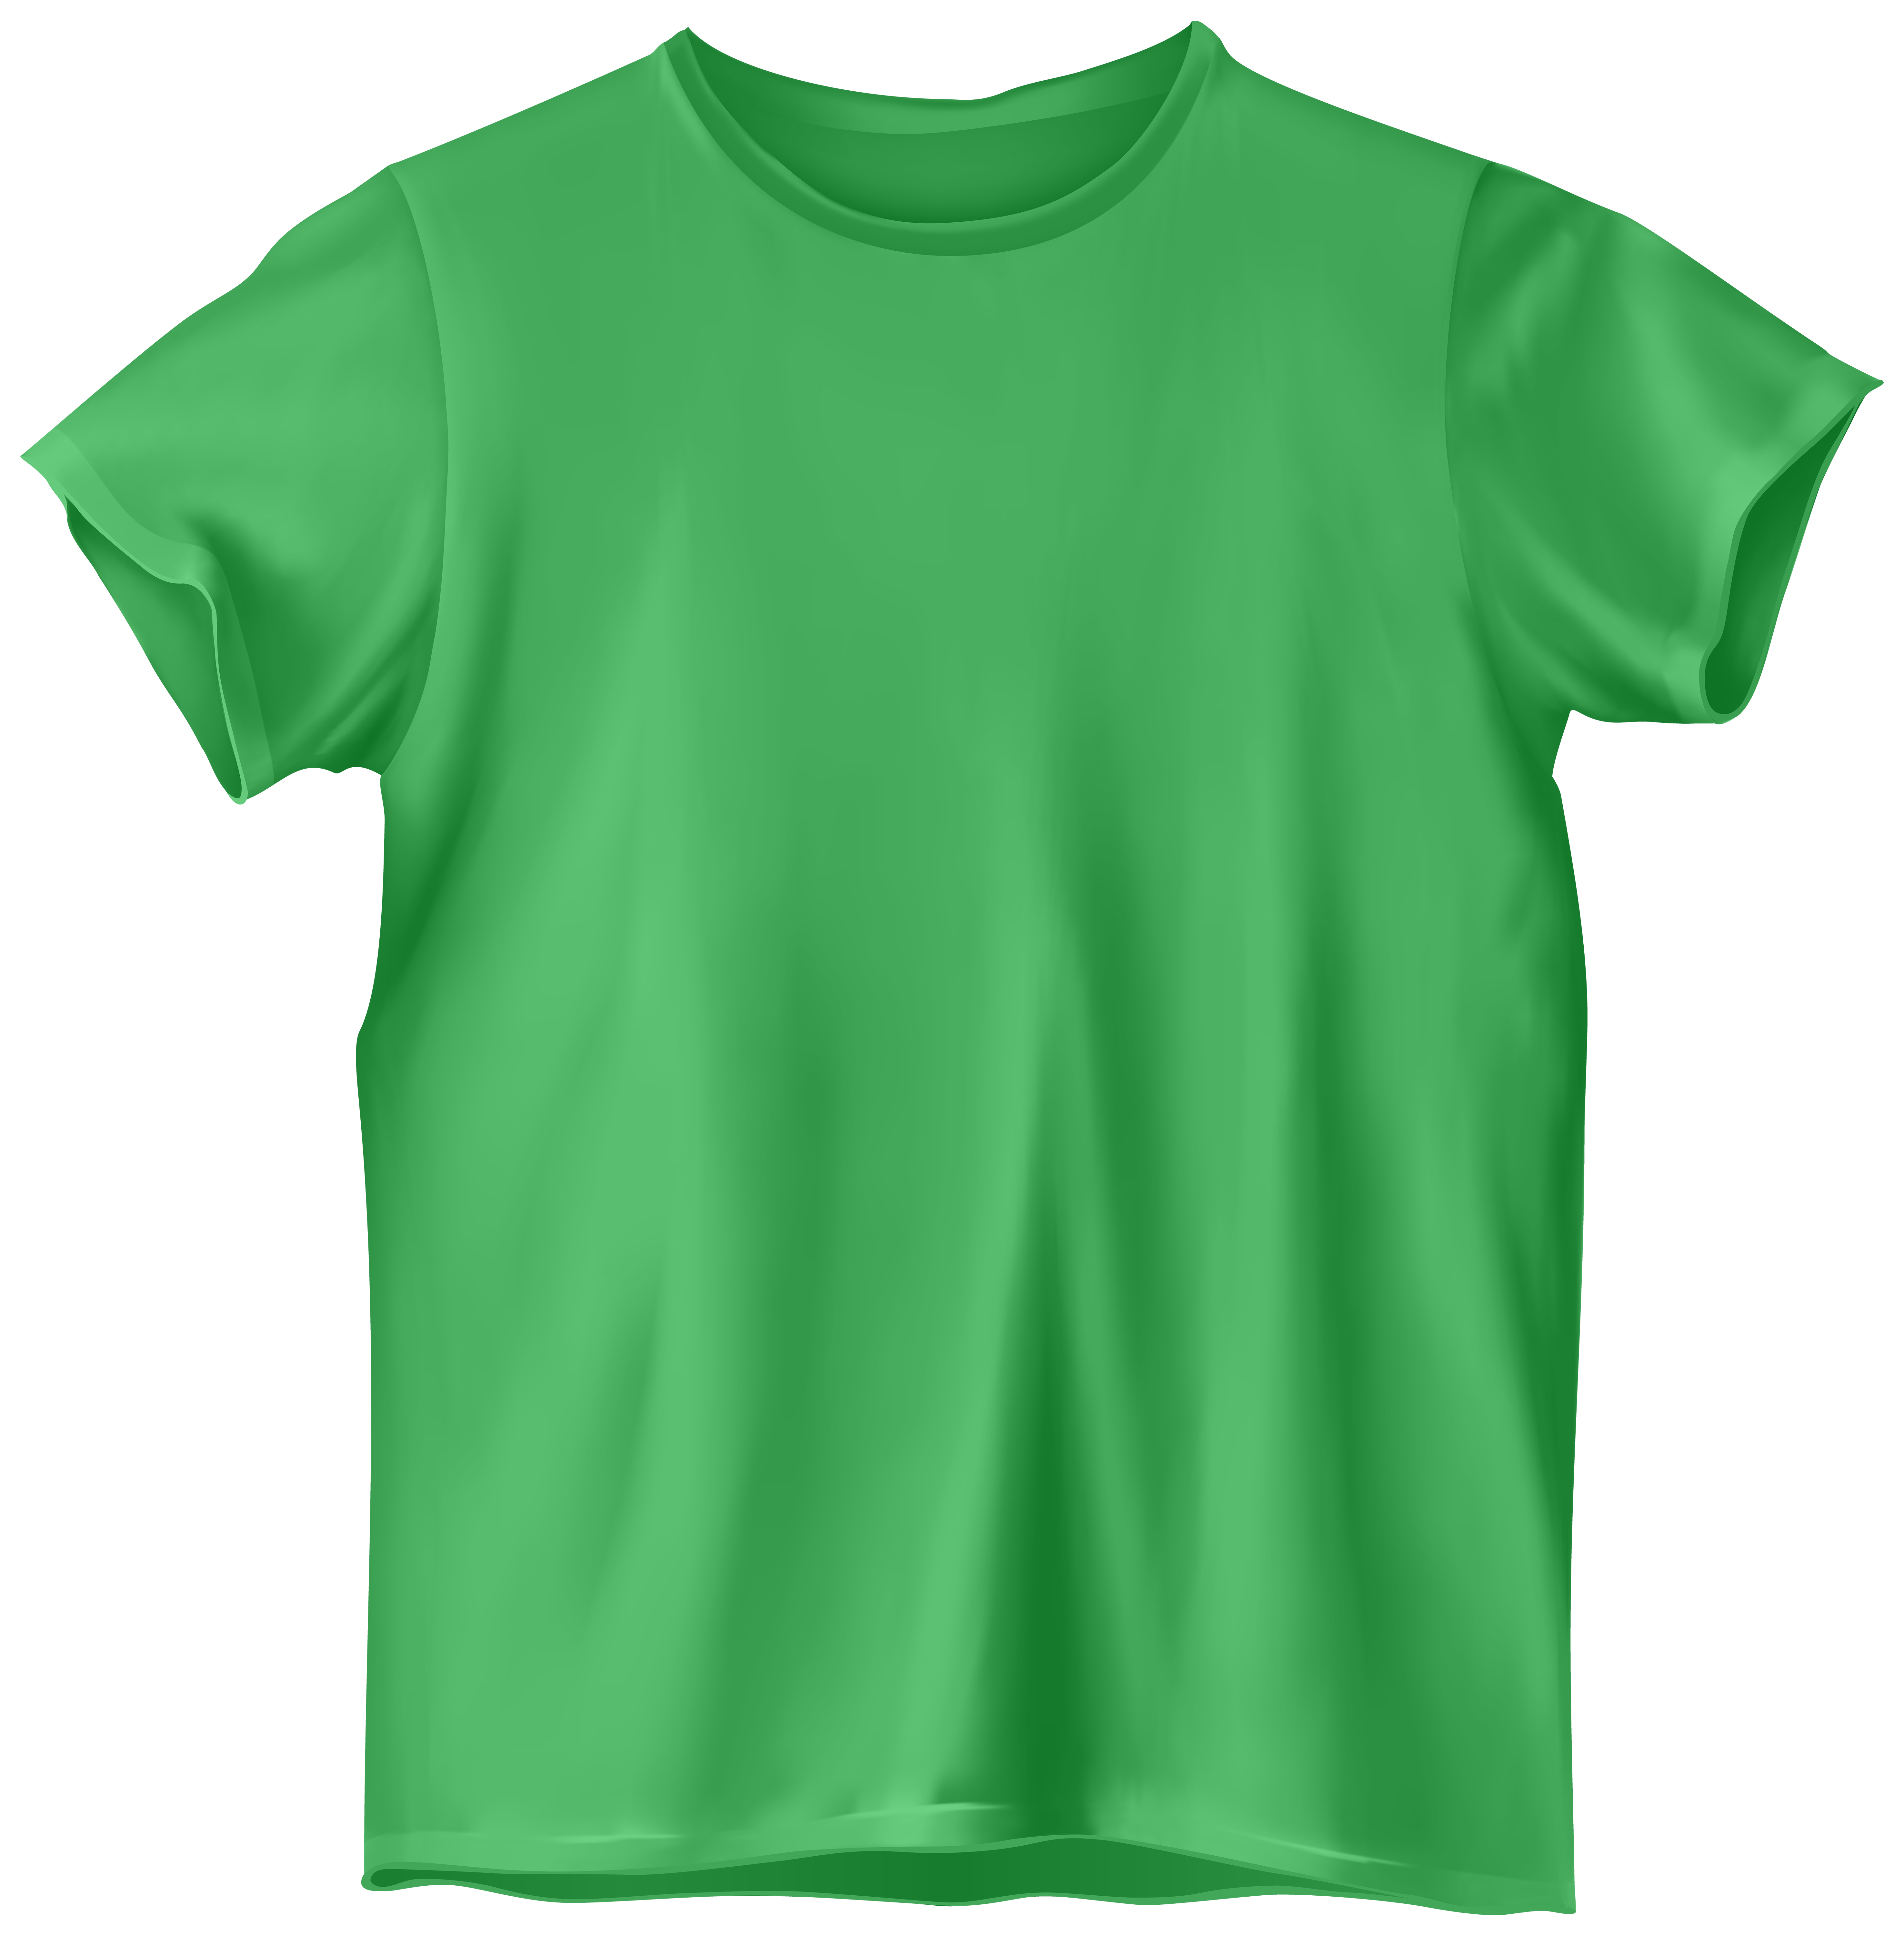 Clipart road top view. Green t shirt png